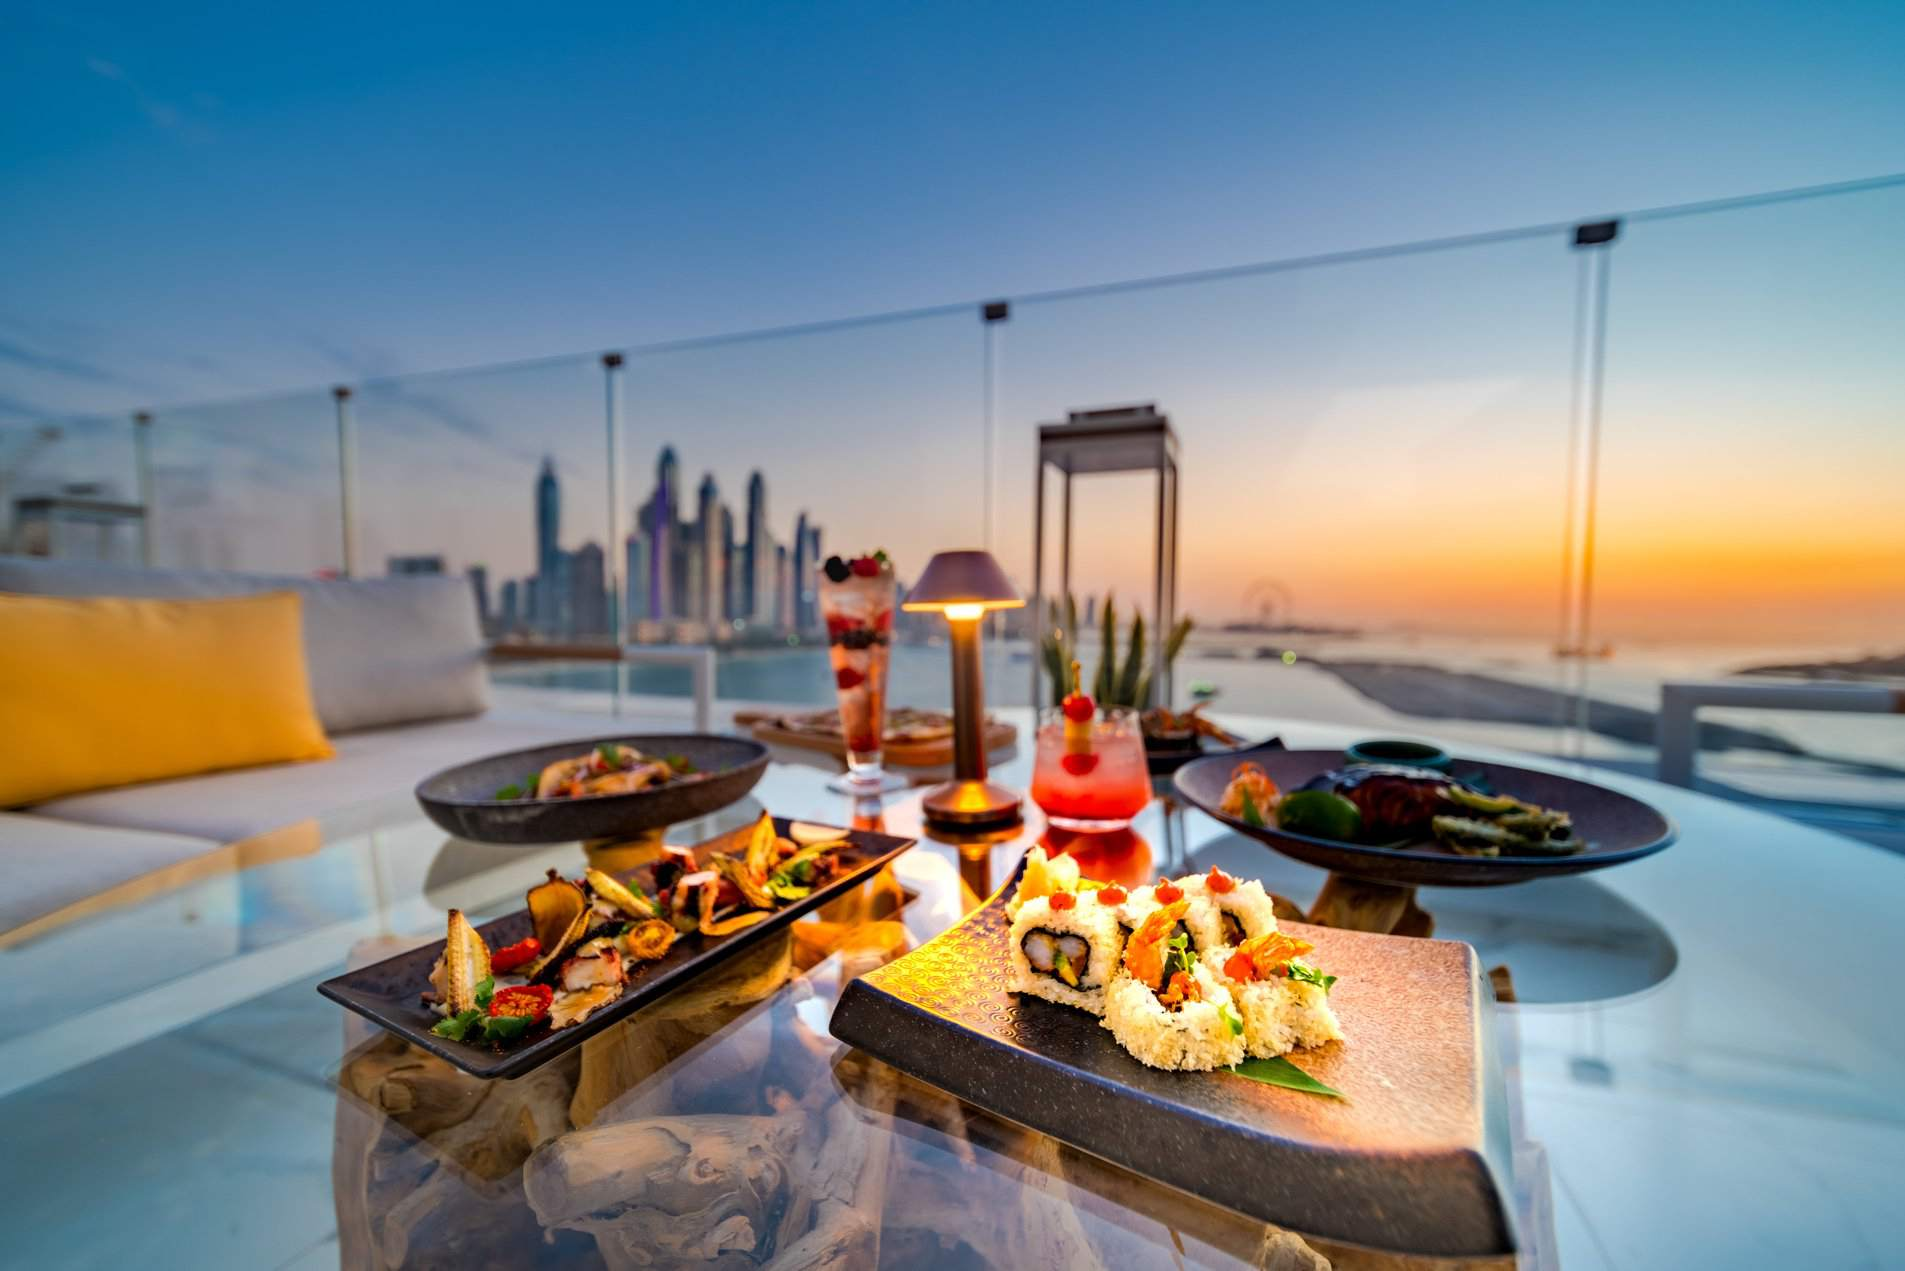 Sushi and drinks at sunset, the penthouse, dubai